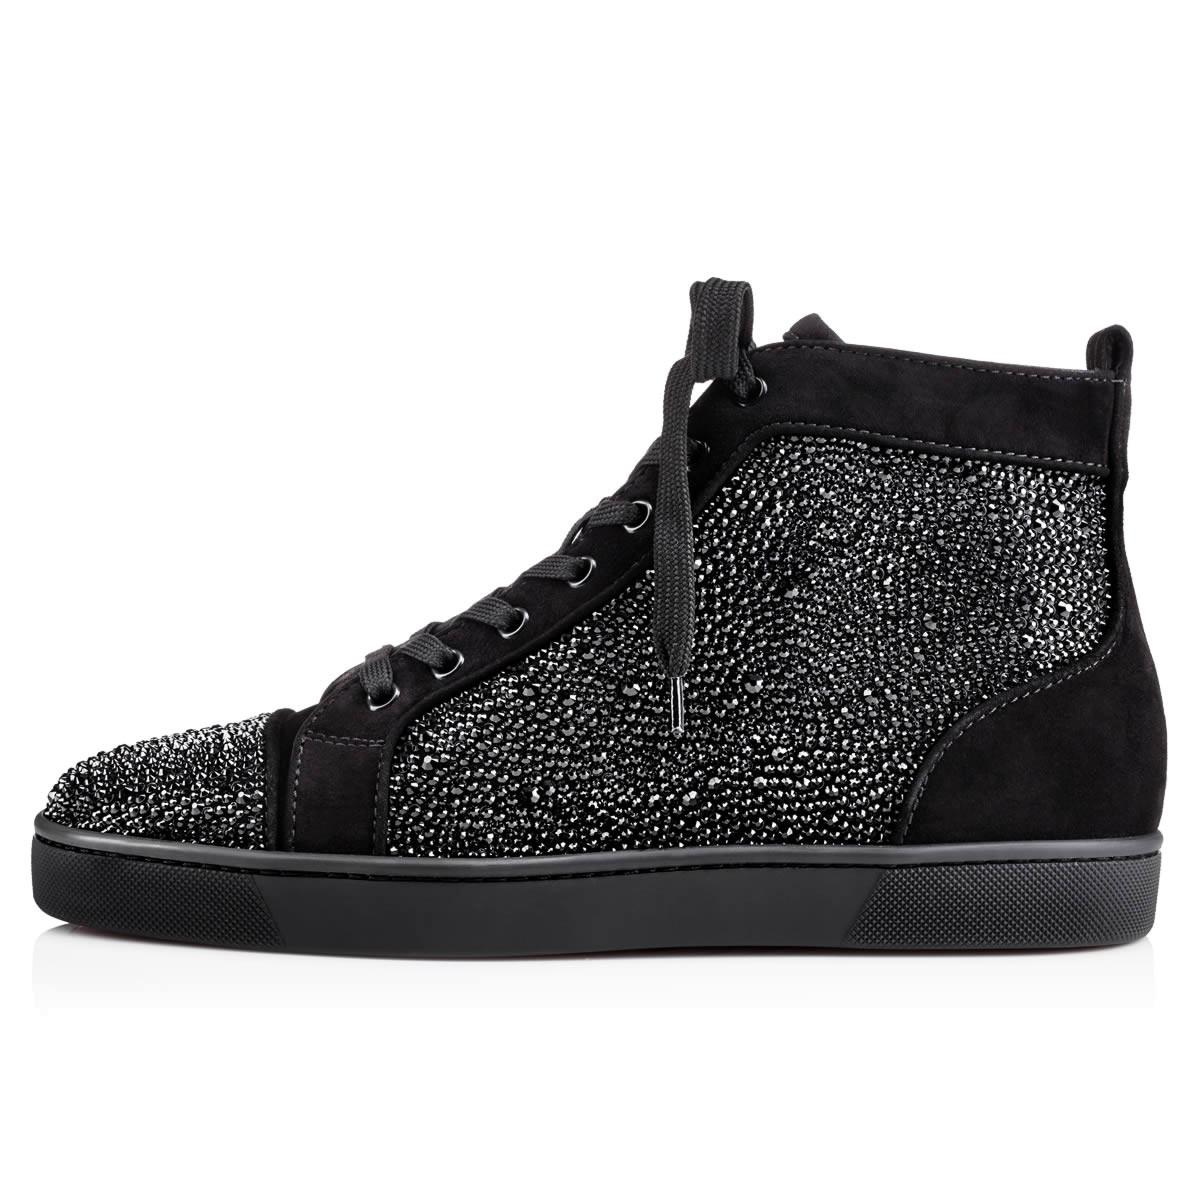 98beafd7f391 Lyst - Christian Louboutin Louis Strass Men s Flat in Black for Men